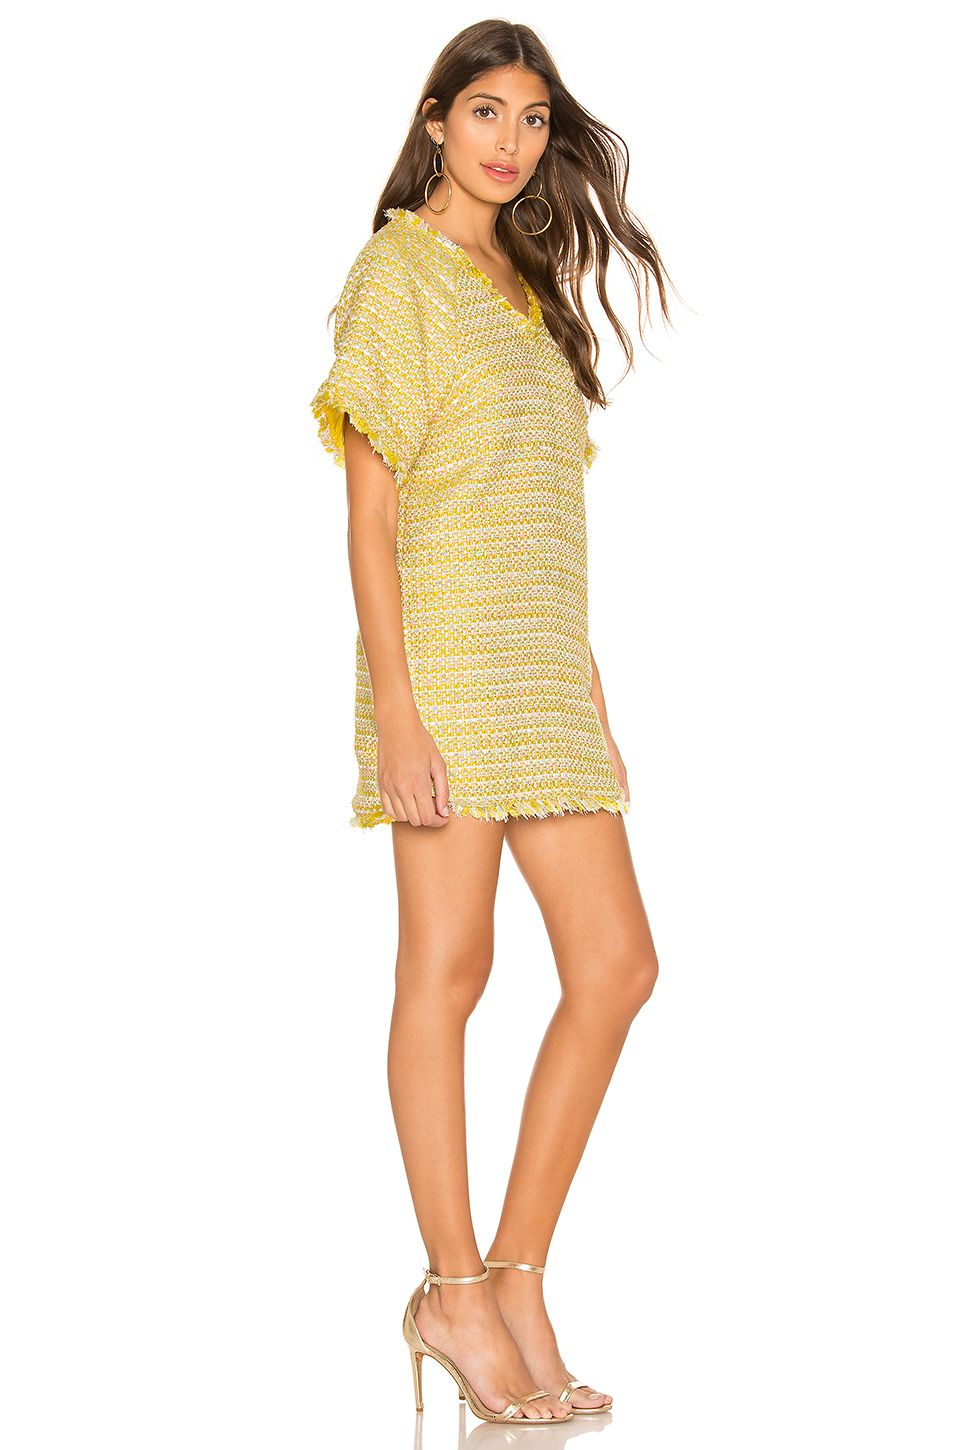 Lovers Friends Sydney Mini Dress In Sun Yellow Affiliate Affiliate Sydney Mini Yellow Friends Mini Dress Fashion Clothes Women Clothes For Women [ 1450 x 960 Pixel ]